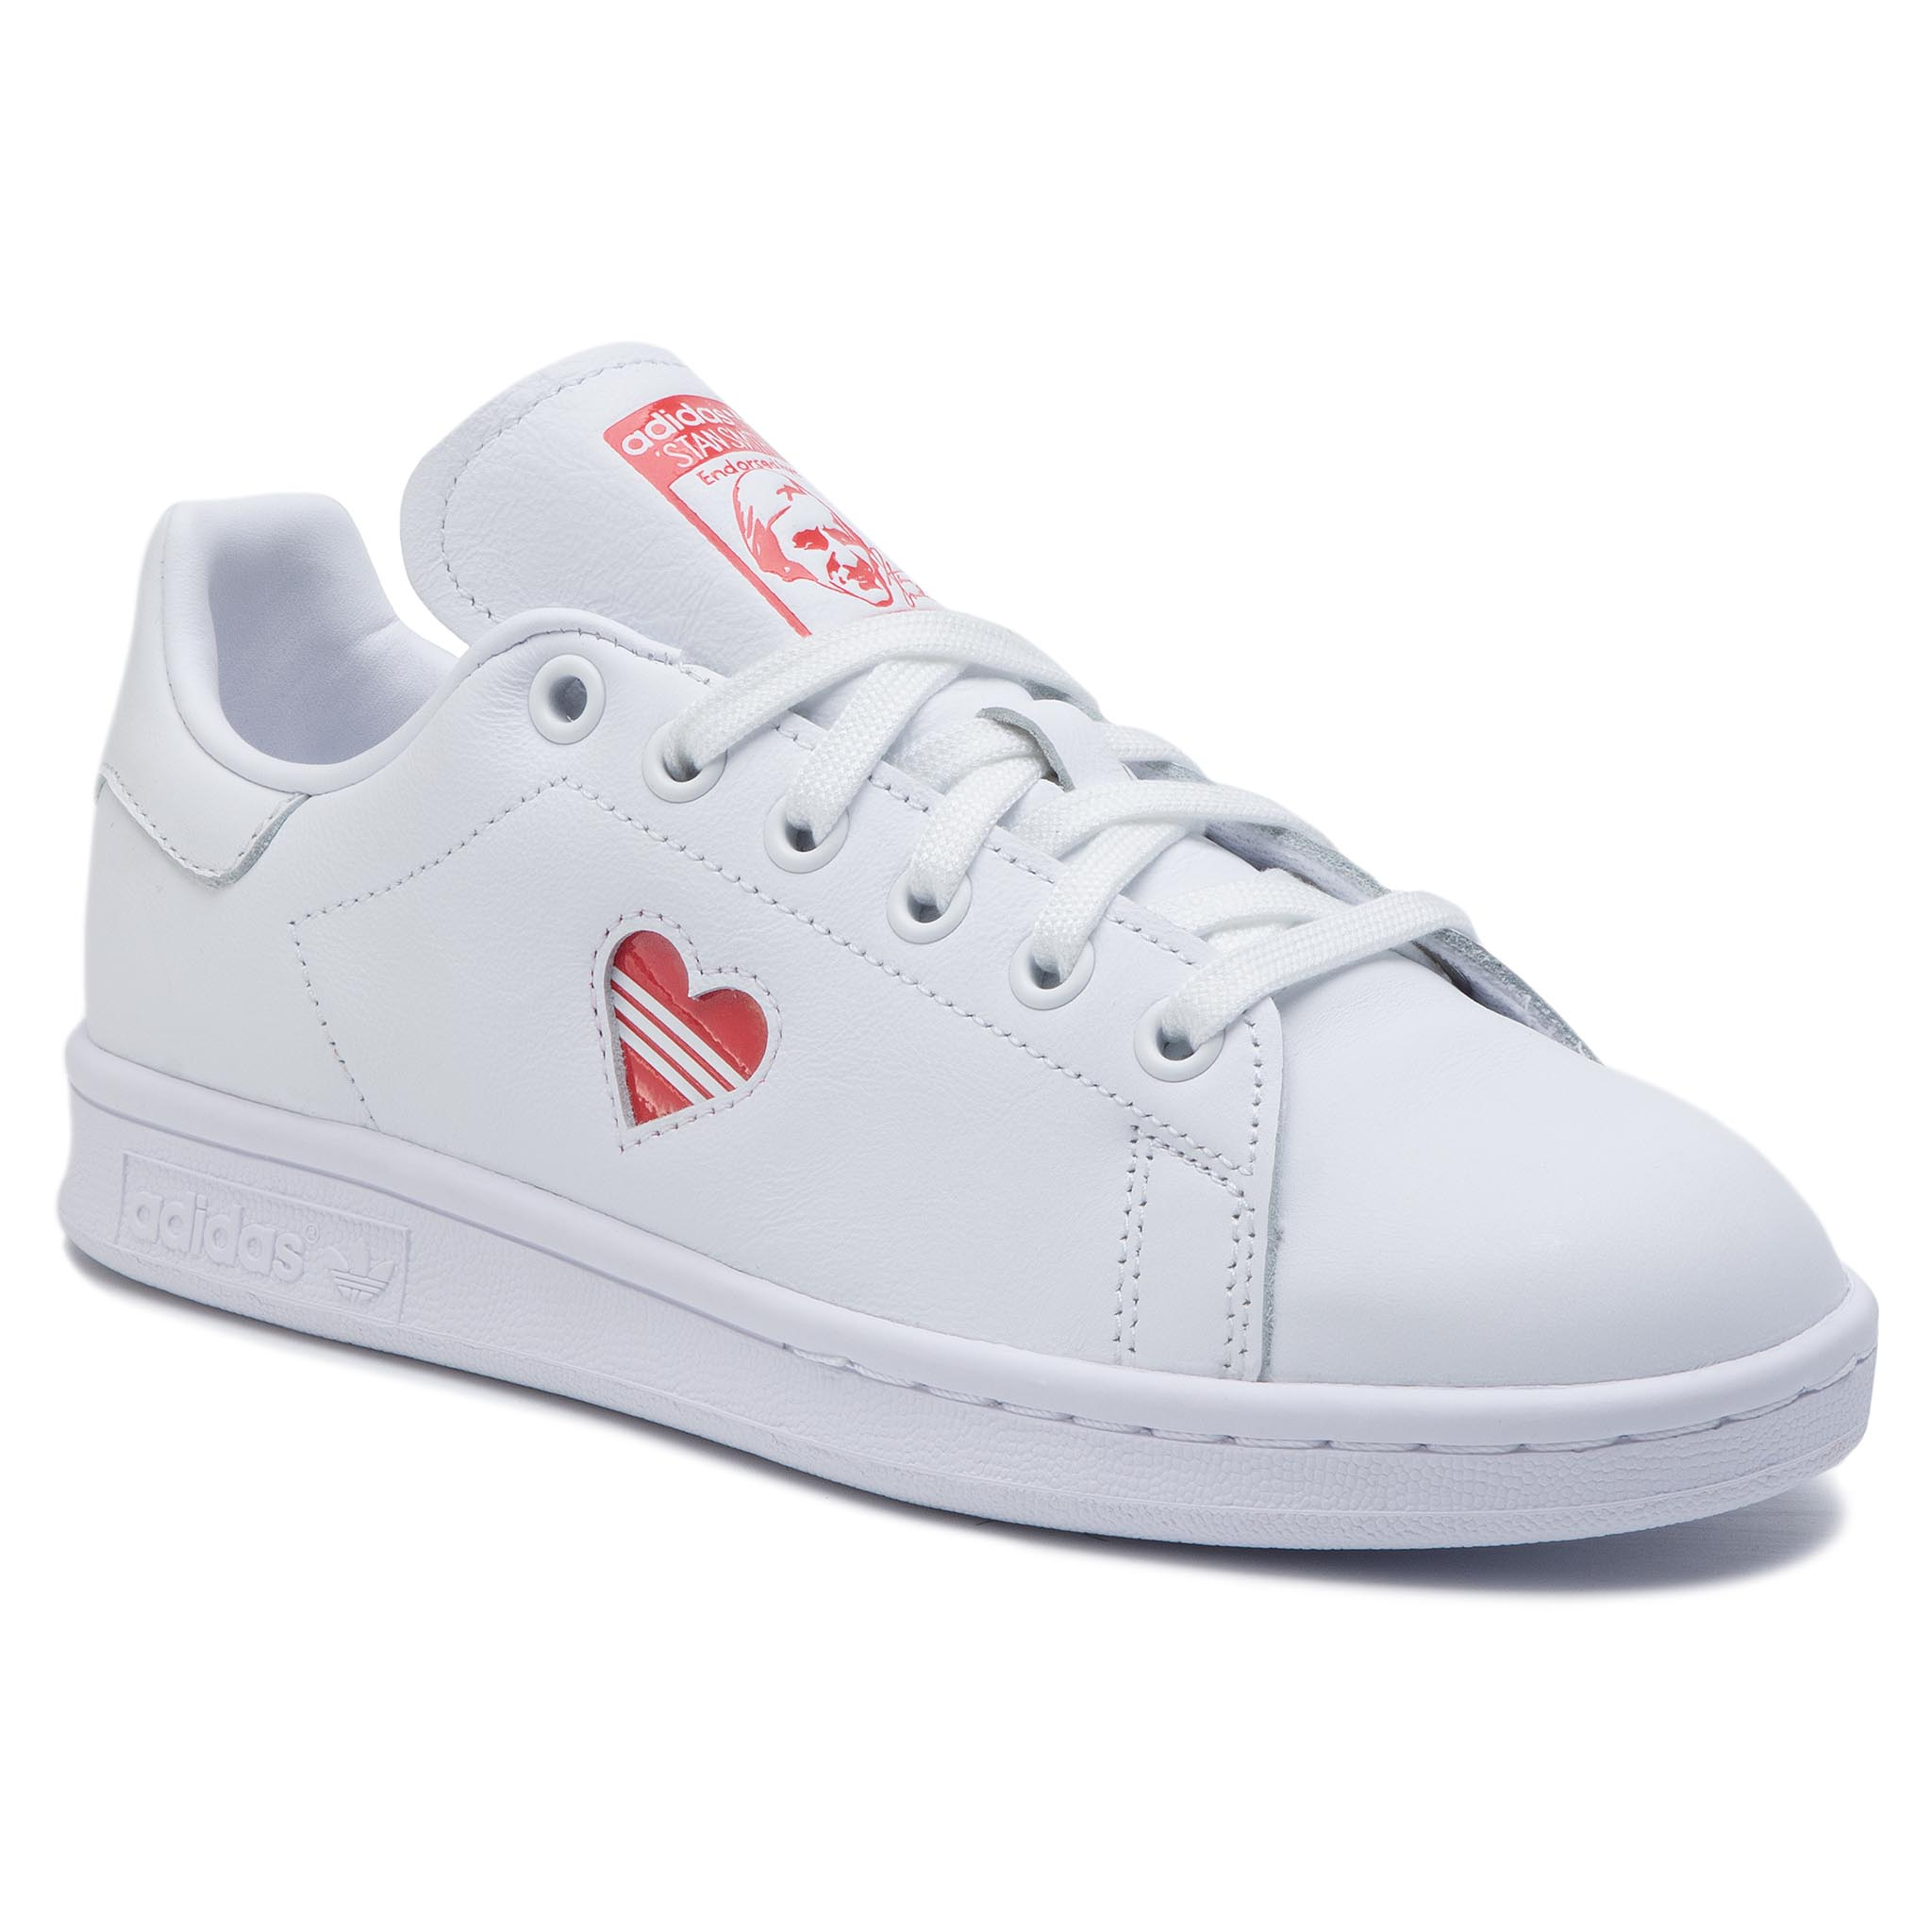 a59a7d33e8c Shoes adidas - Stan Smith B38040 Ftwwht/Ftwwht/Foxred - Sneakers ...